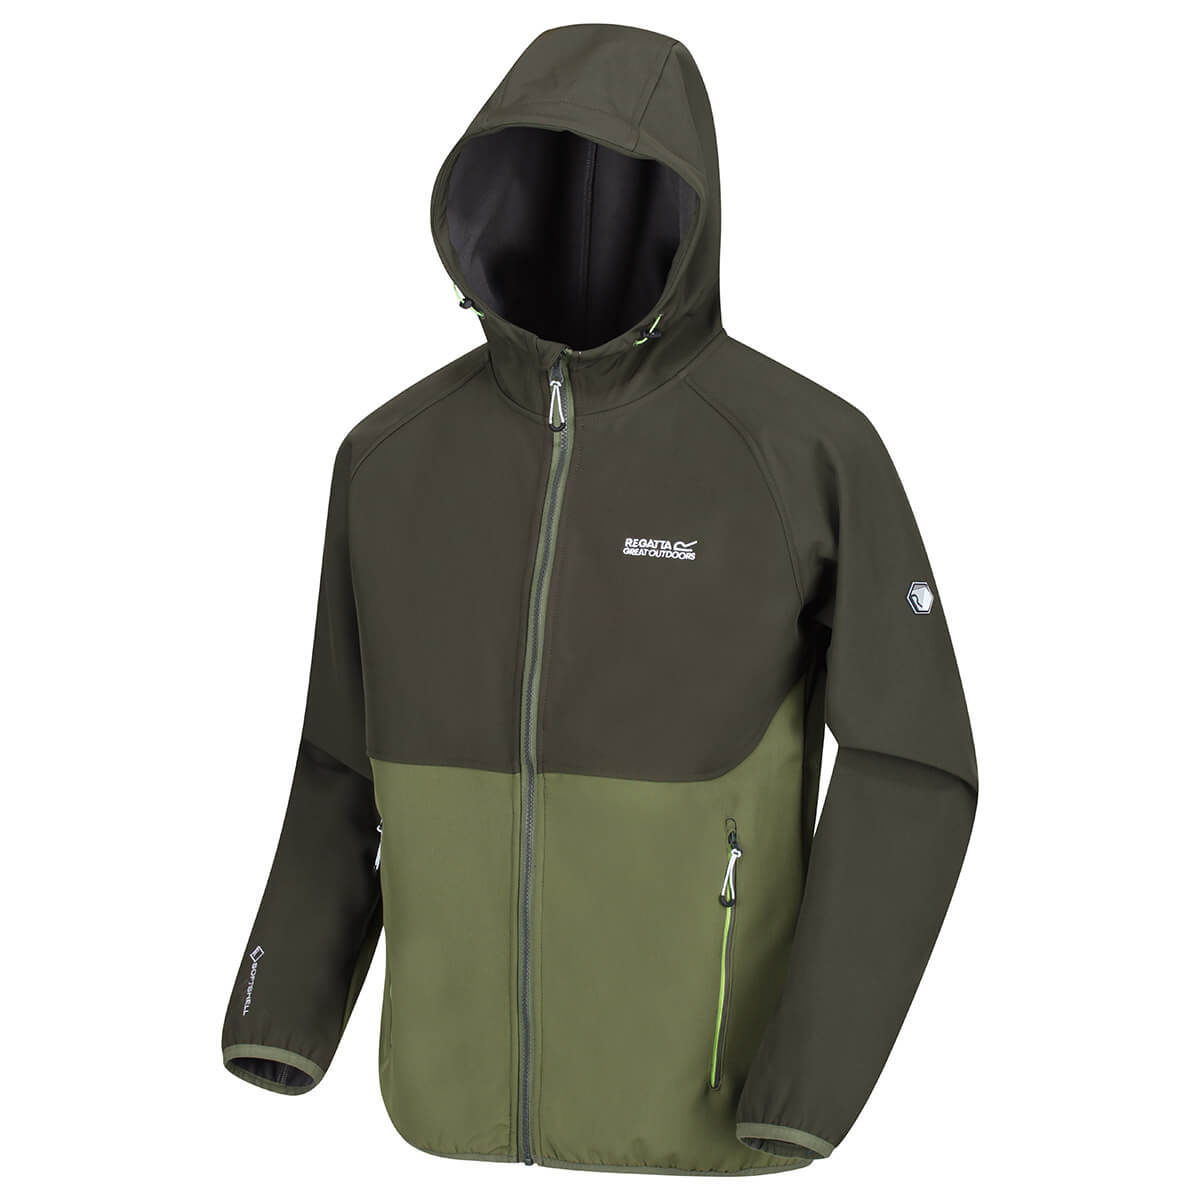 Regatta-Mens-Arec-II-Softshell-Waterproof-Stretch-Hooded-Jacket-68-OFF-RRP thumbnail 4